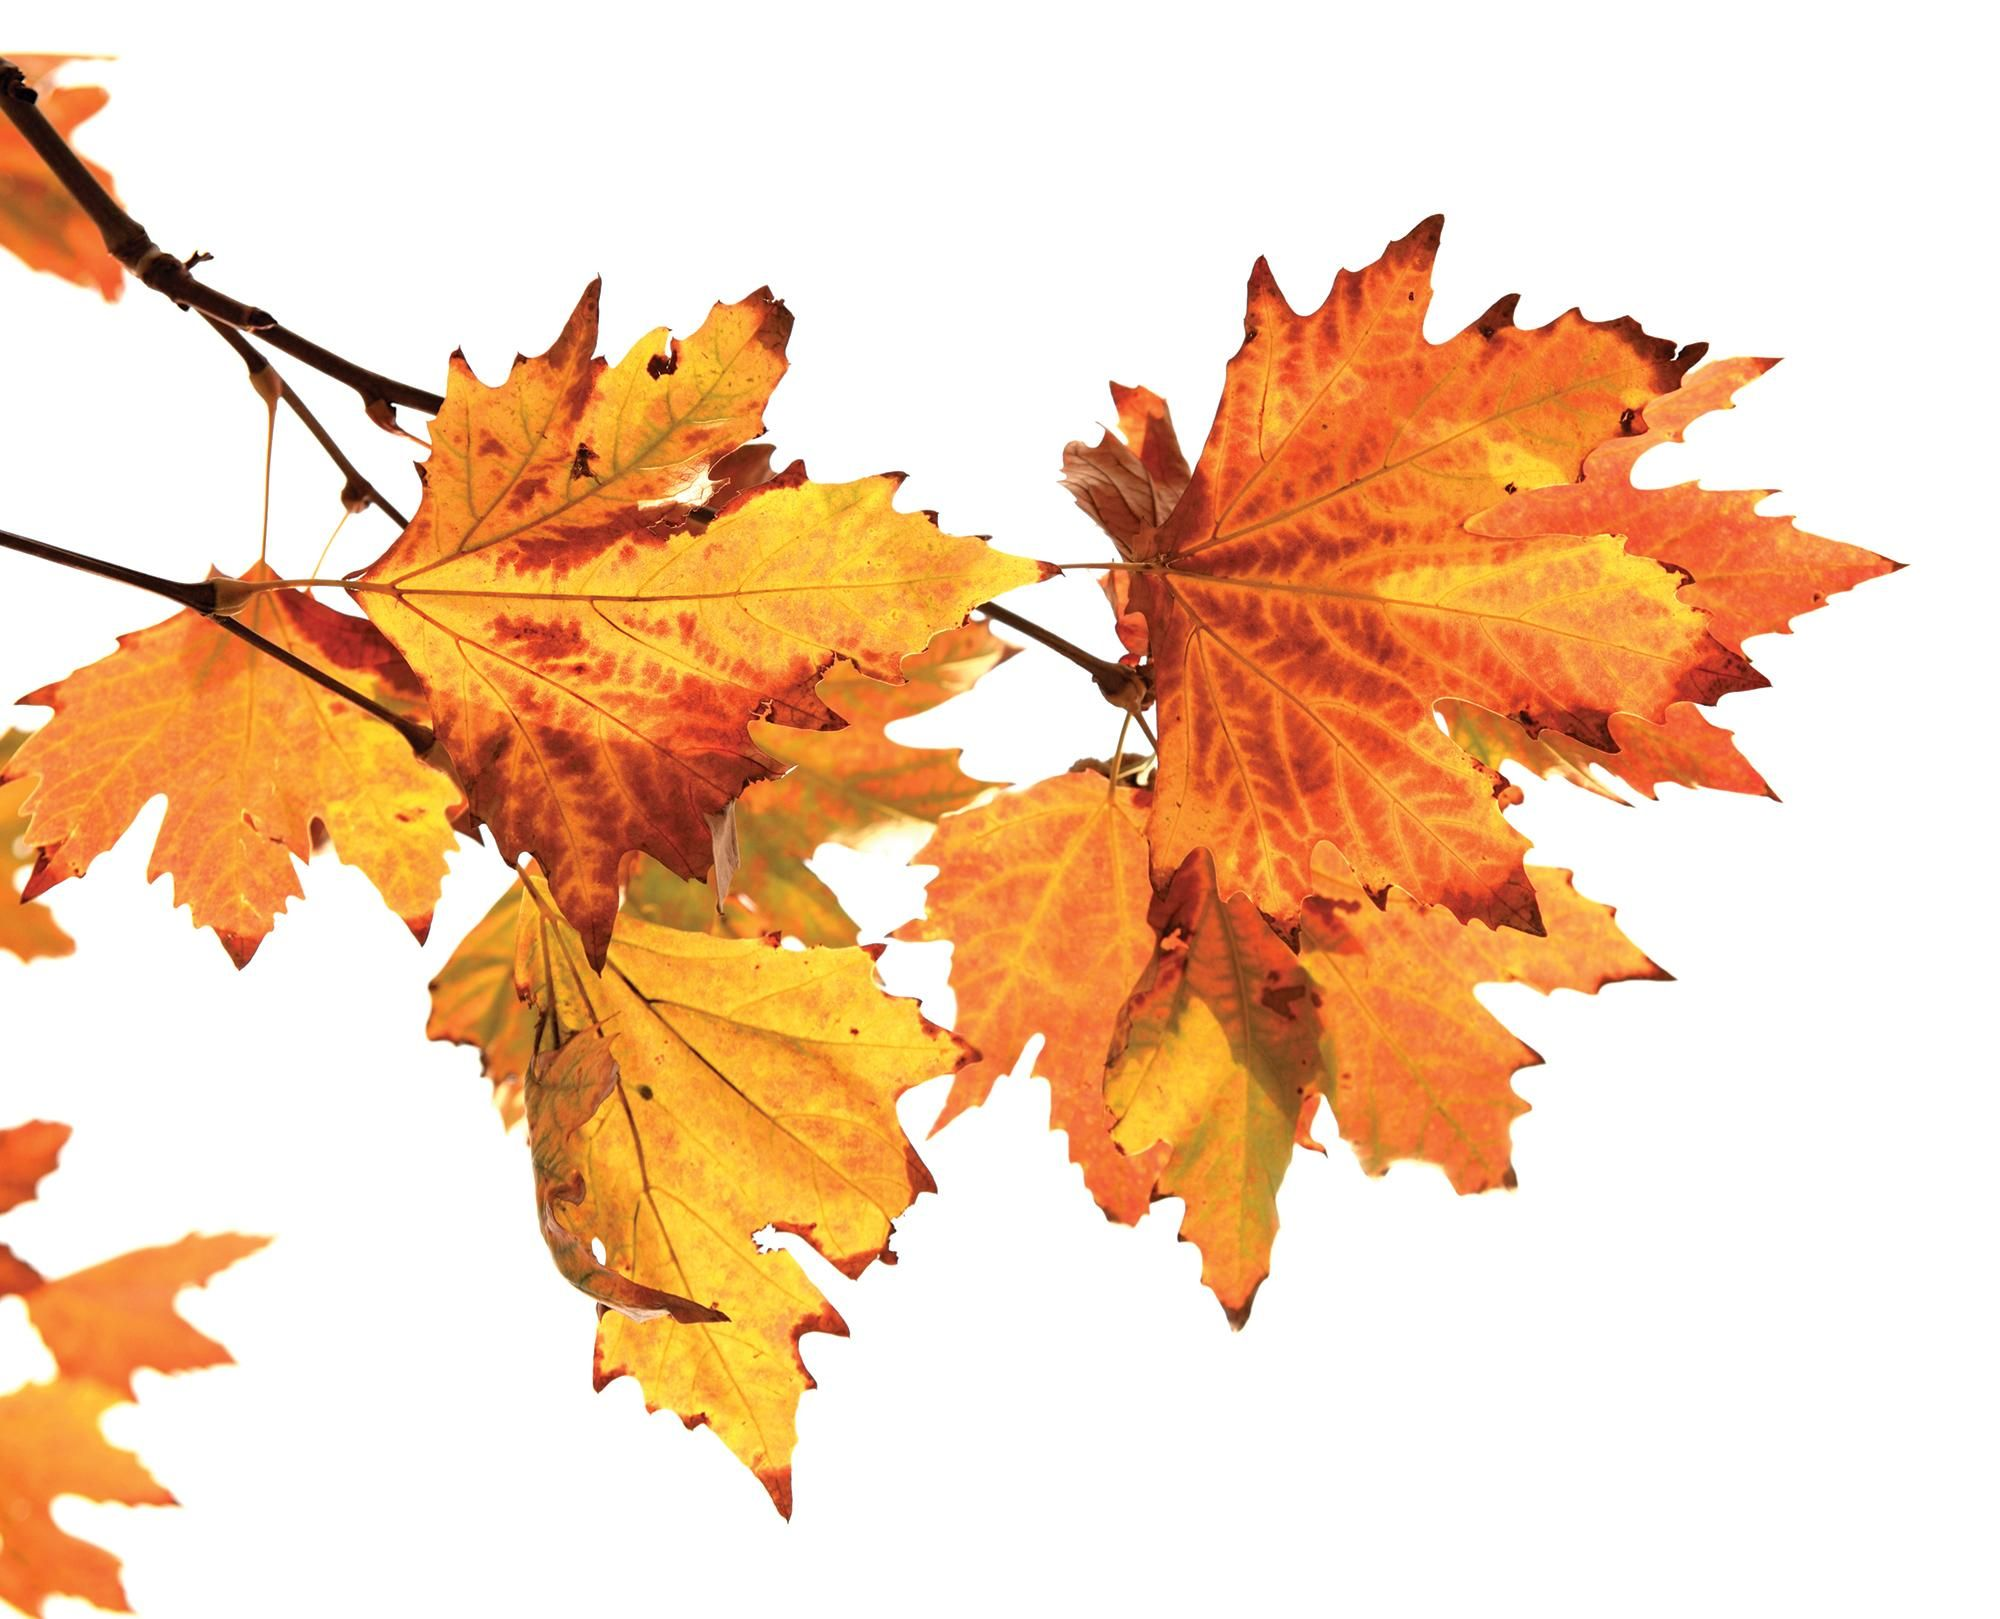 Leaves Are Loaded With Chlorophyll Which Makes Them